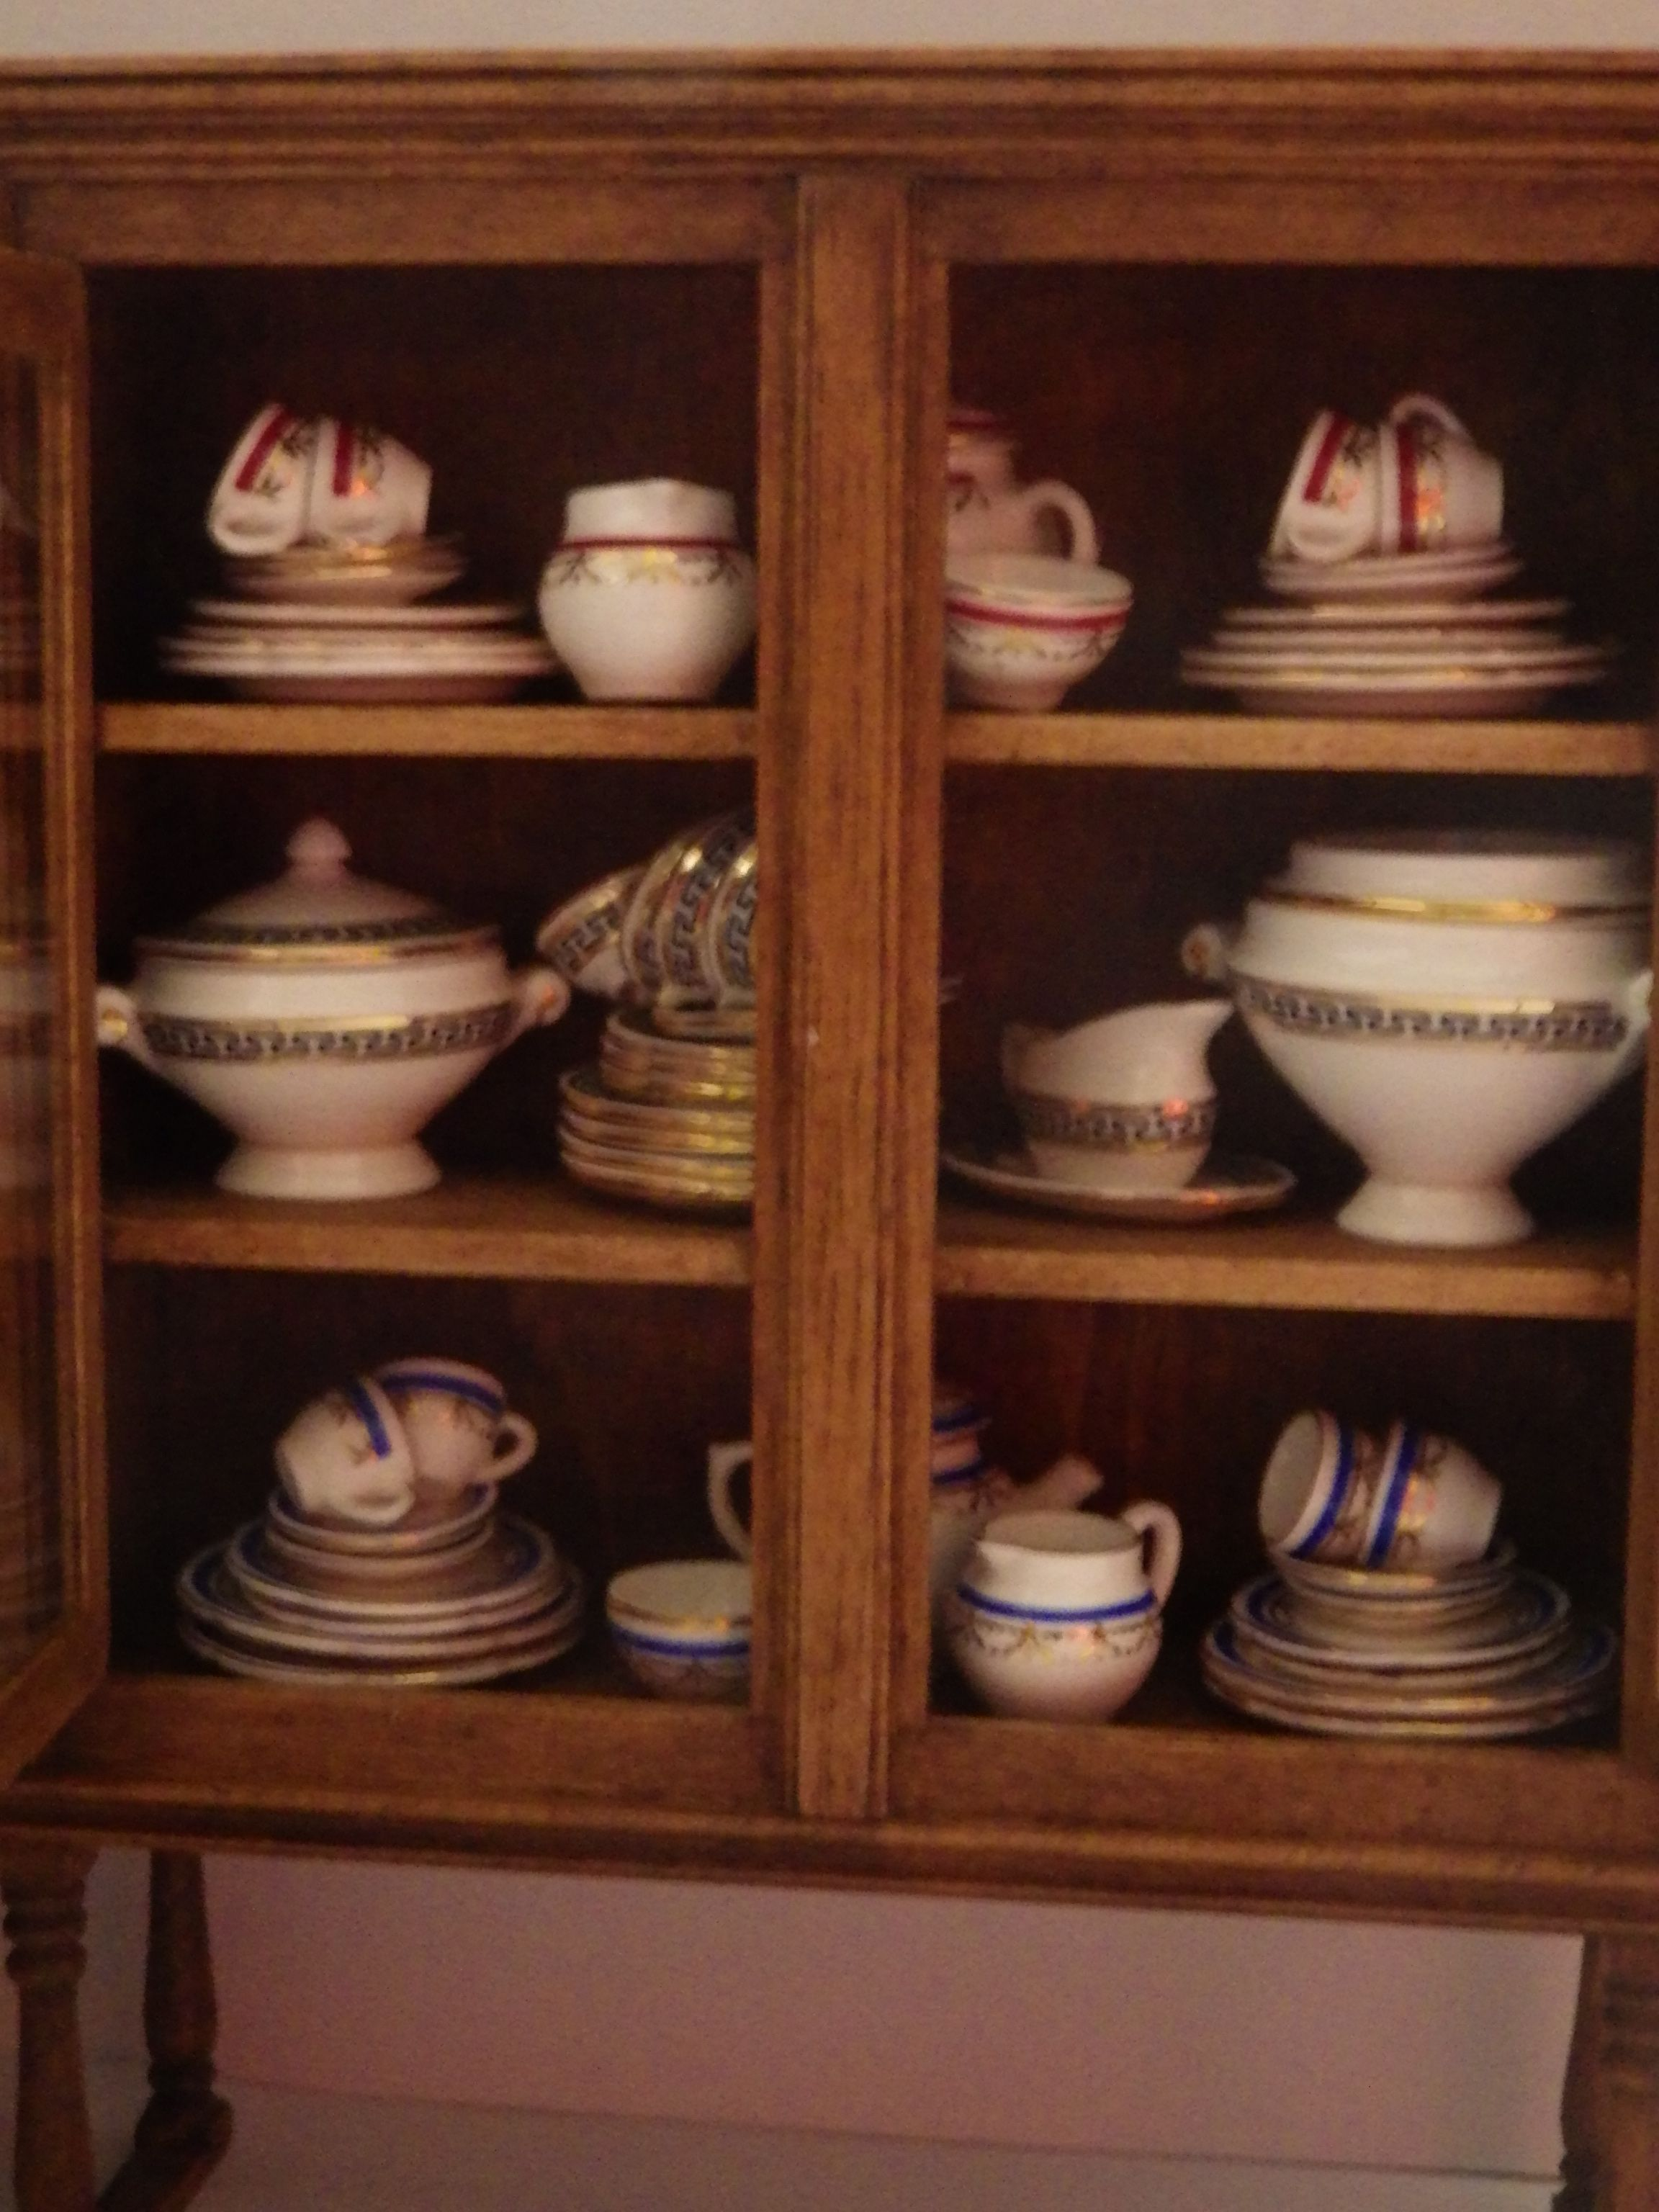 One of the china cabinets in the butlers pantry of Poppyfield Dr